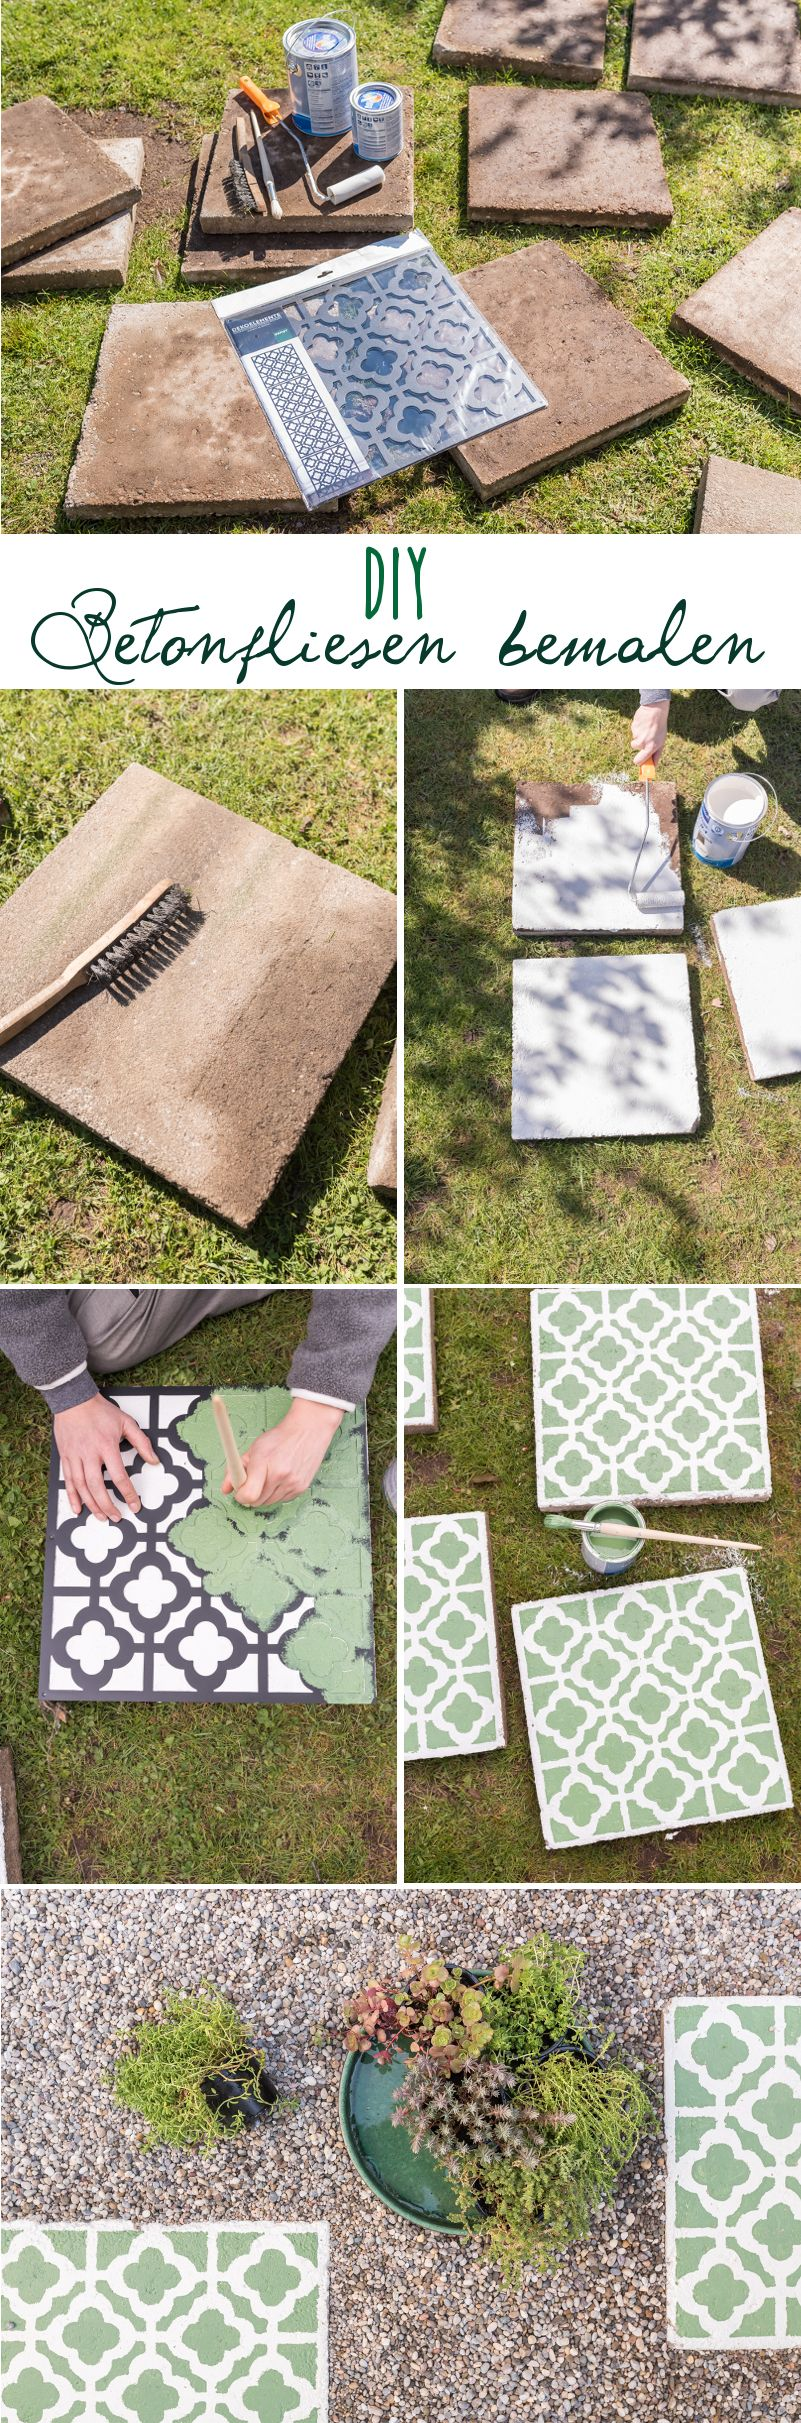 DIY Betonplatten Upcycling Für Den Garten Upcycling Ideas - Farbige betonplatten